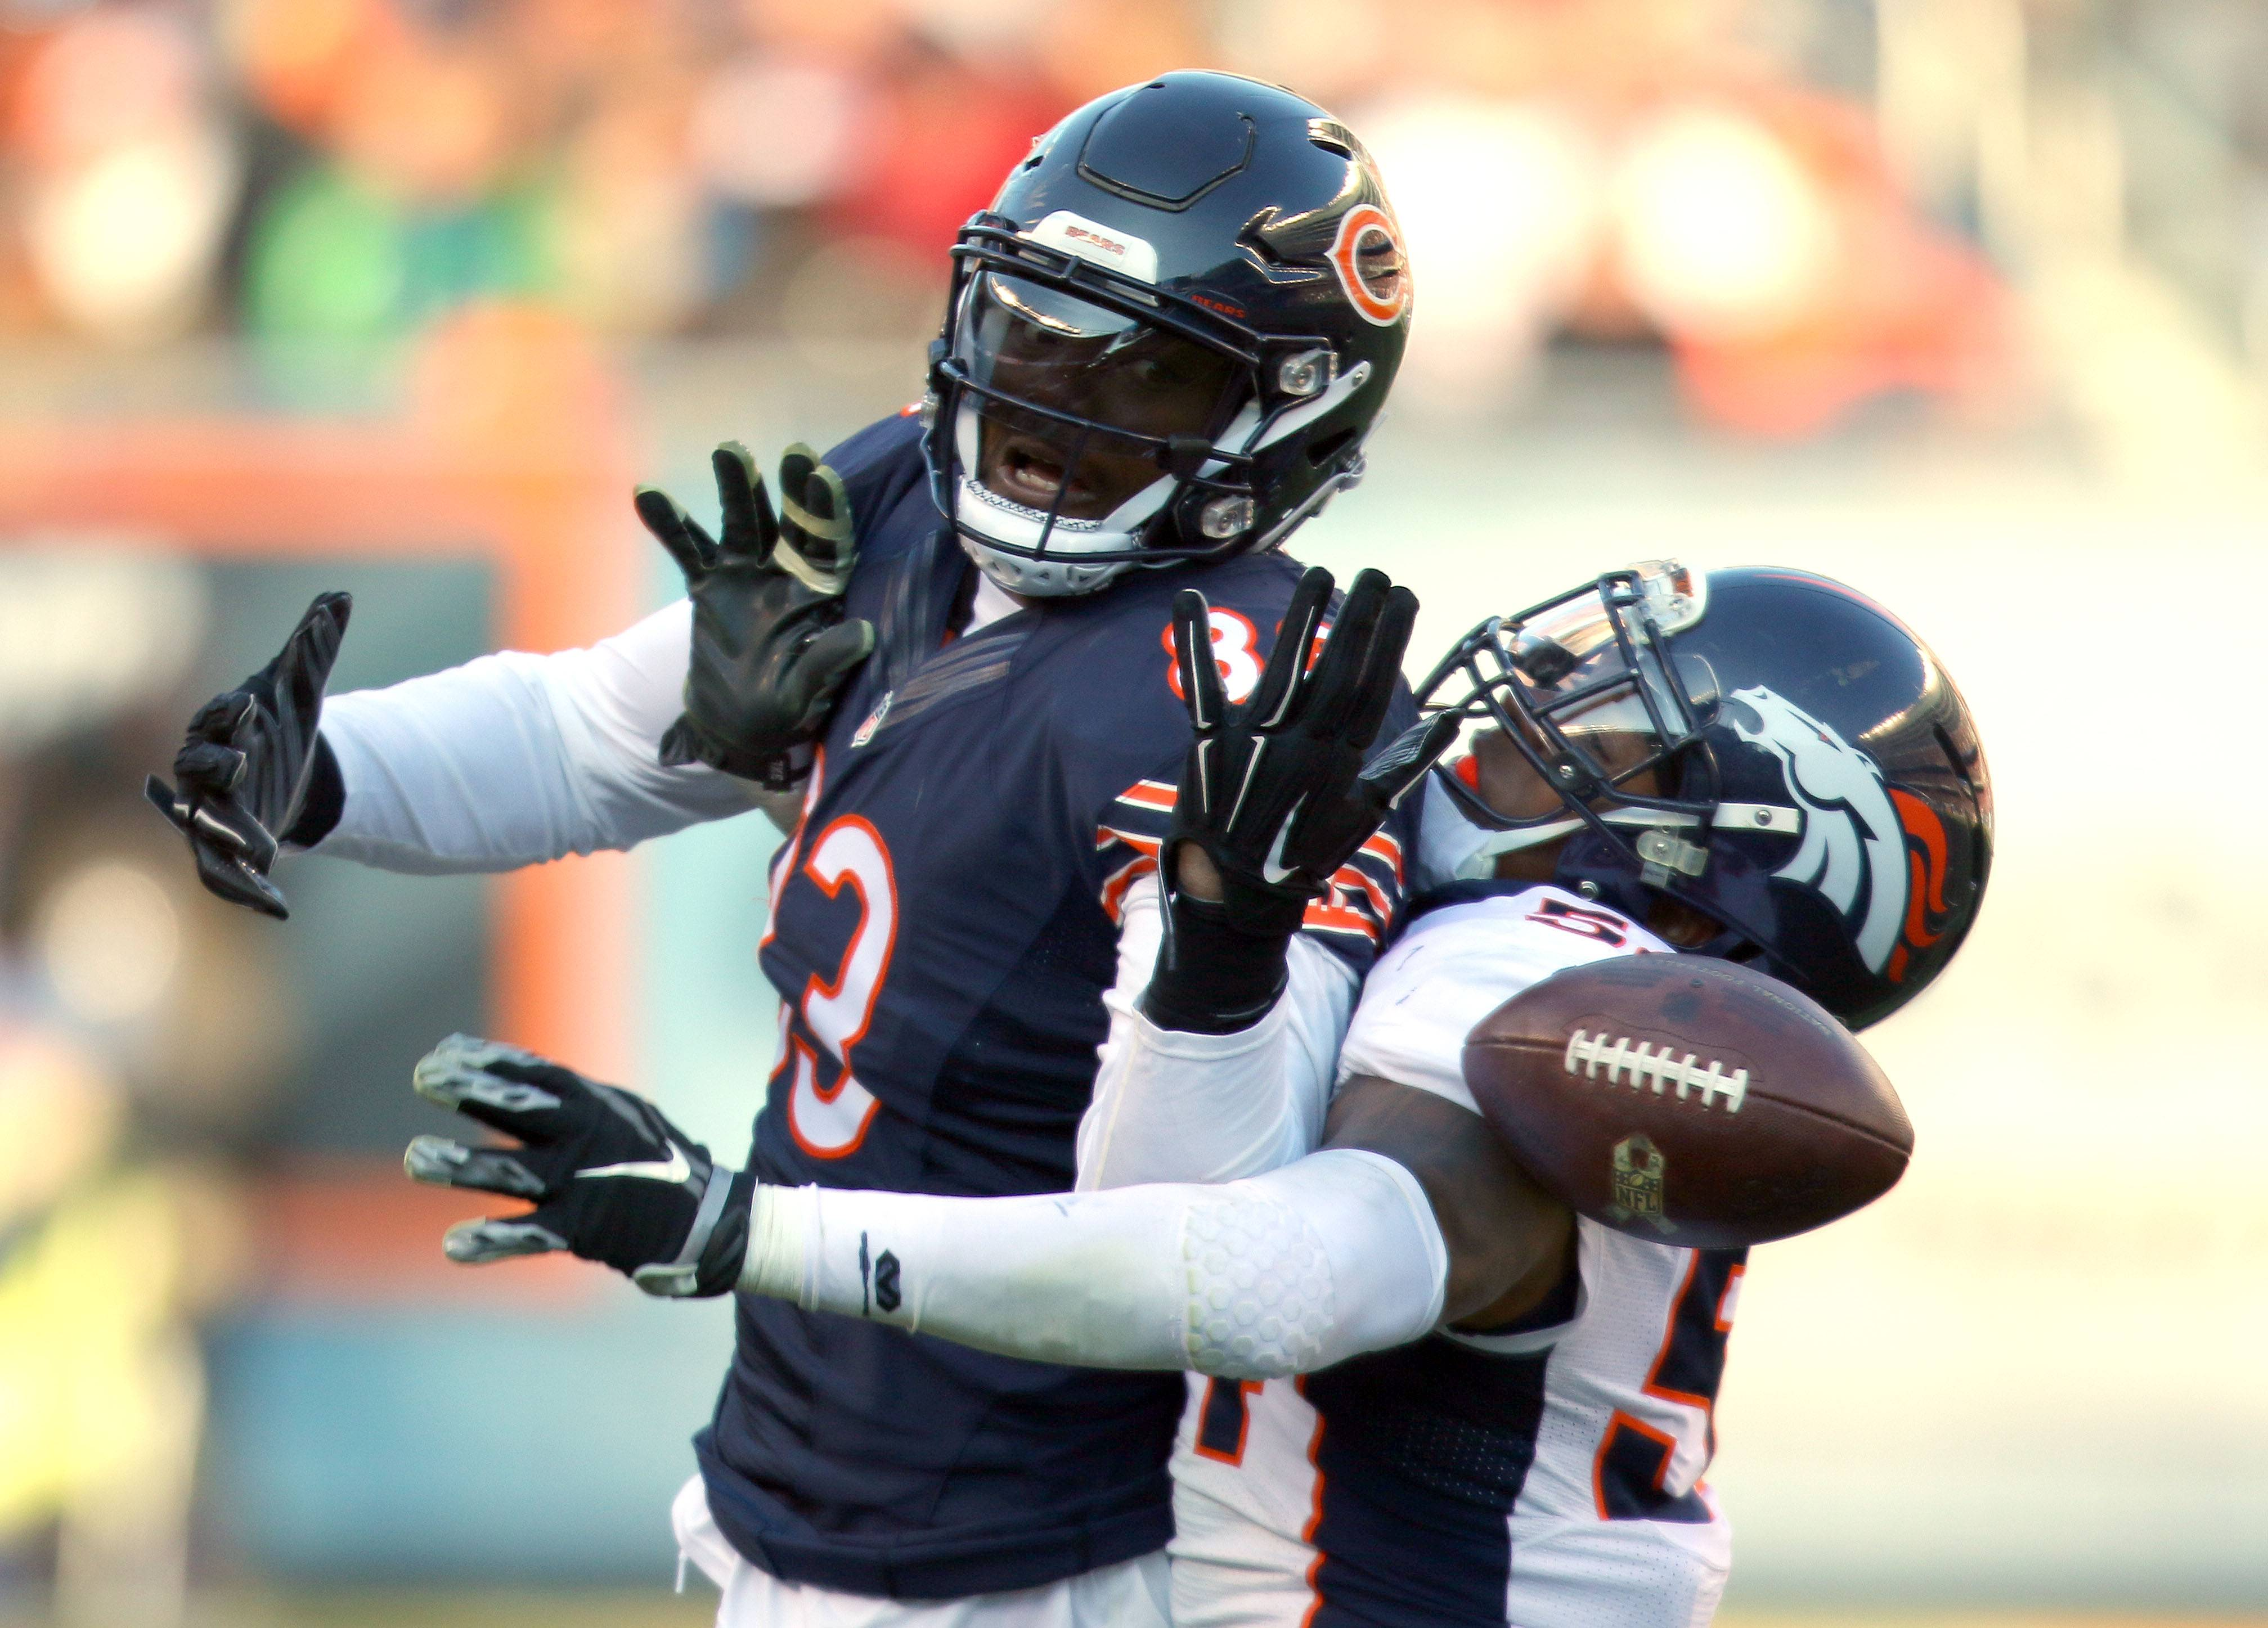 Chicago Bears tight end Martellus Bennett is interfered with by Denver Broncos inside linebacker Brandon Marshall during Chicago Bears vs. the Denver Broncos game Sunday, November 22, 2015 at Soldier Field in Chicago.